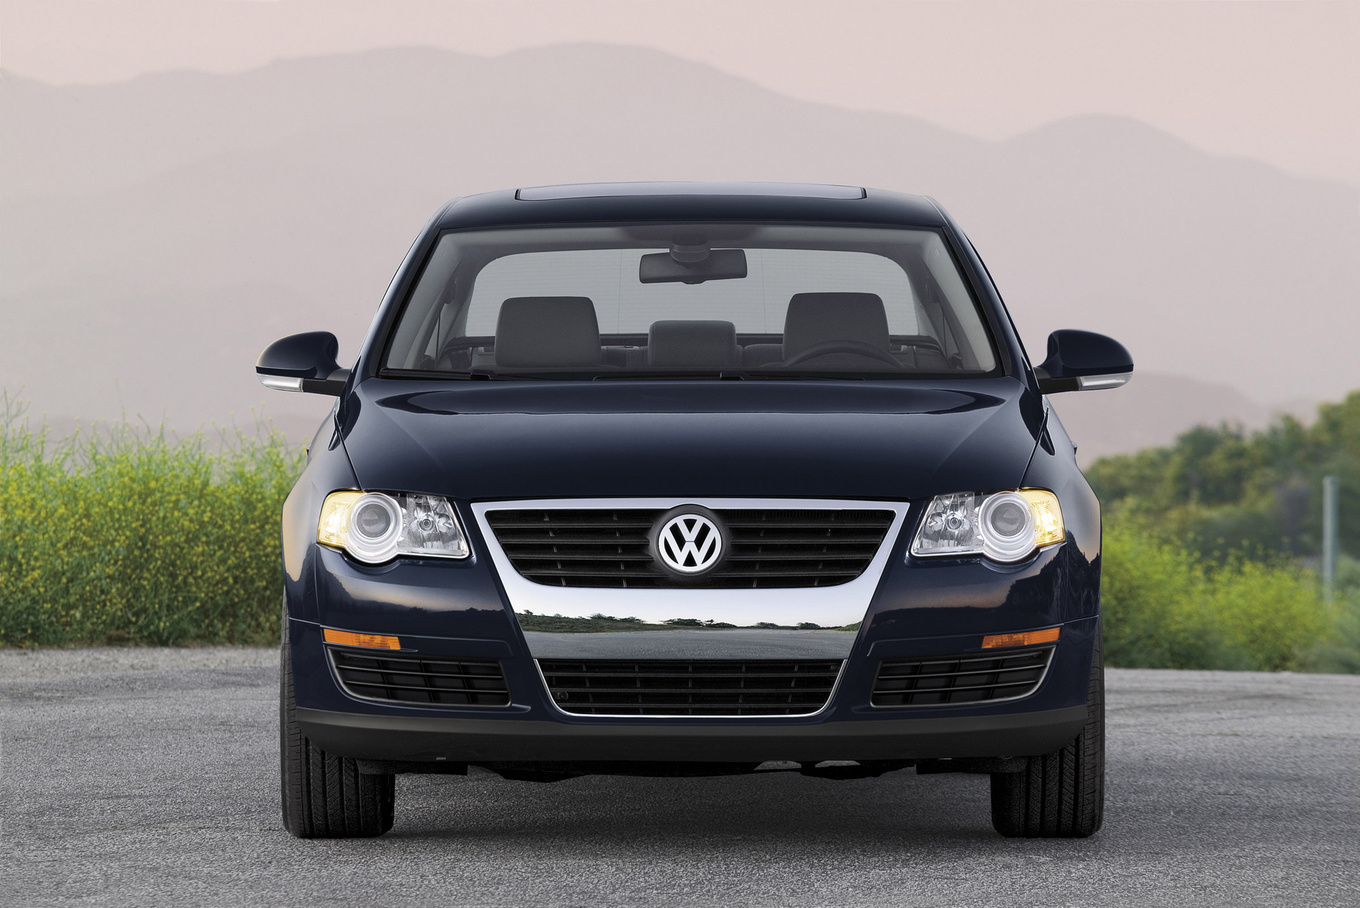 2009 volkswagen passat pictures cargurus. Black Bedroom Furniture Sets. Home Design Ideas